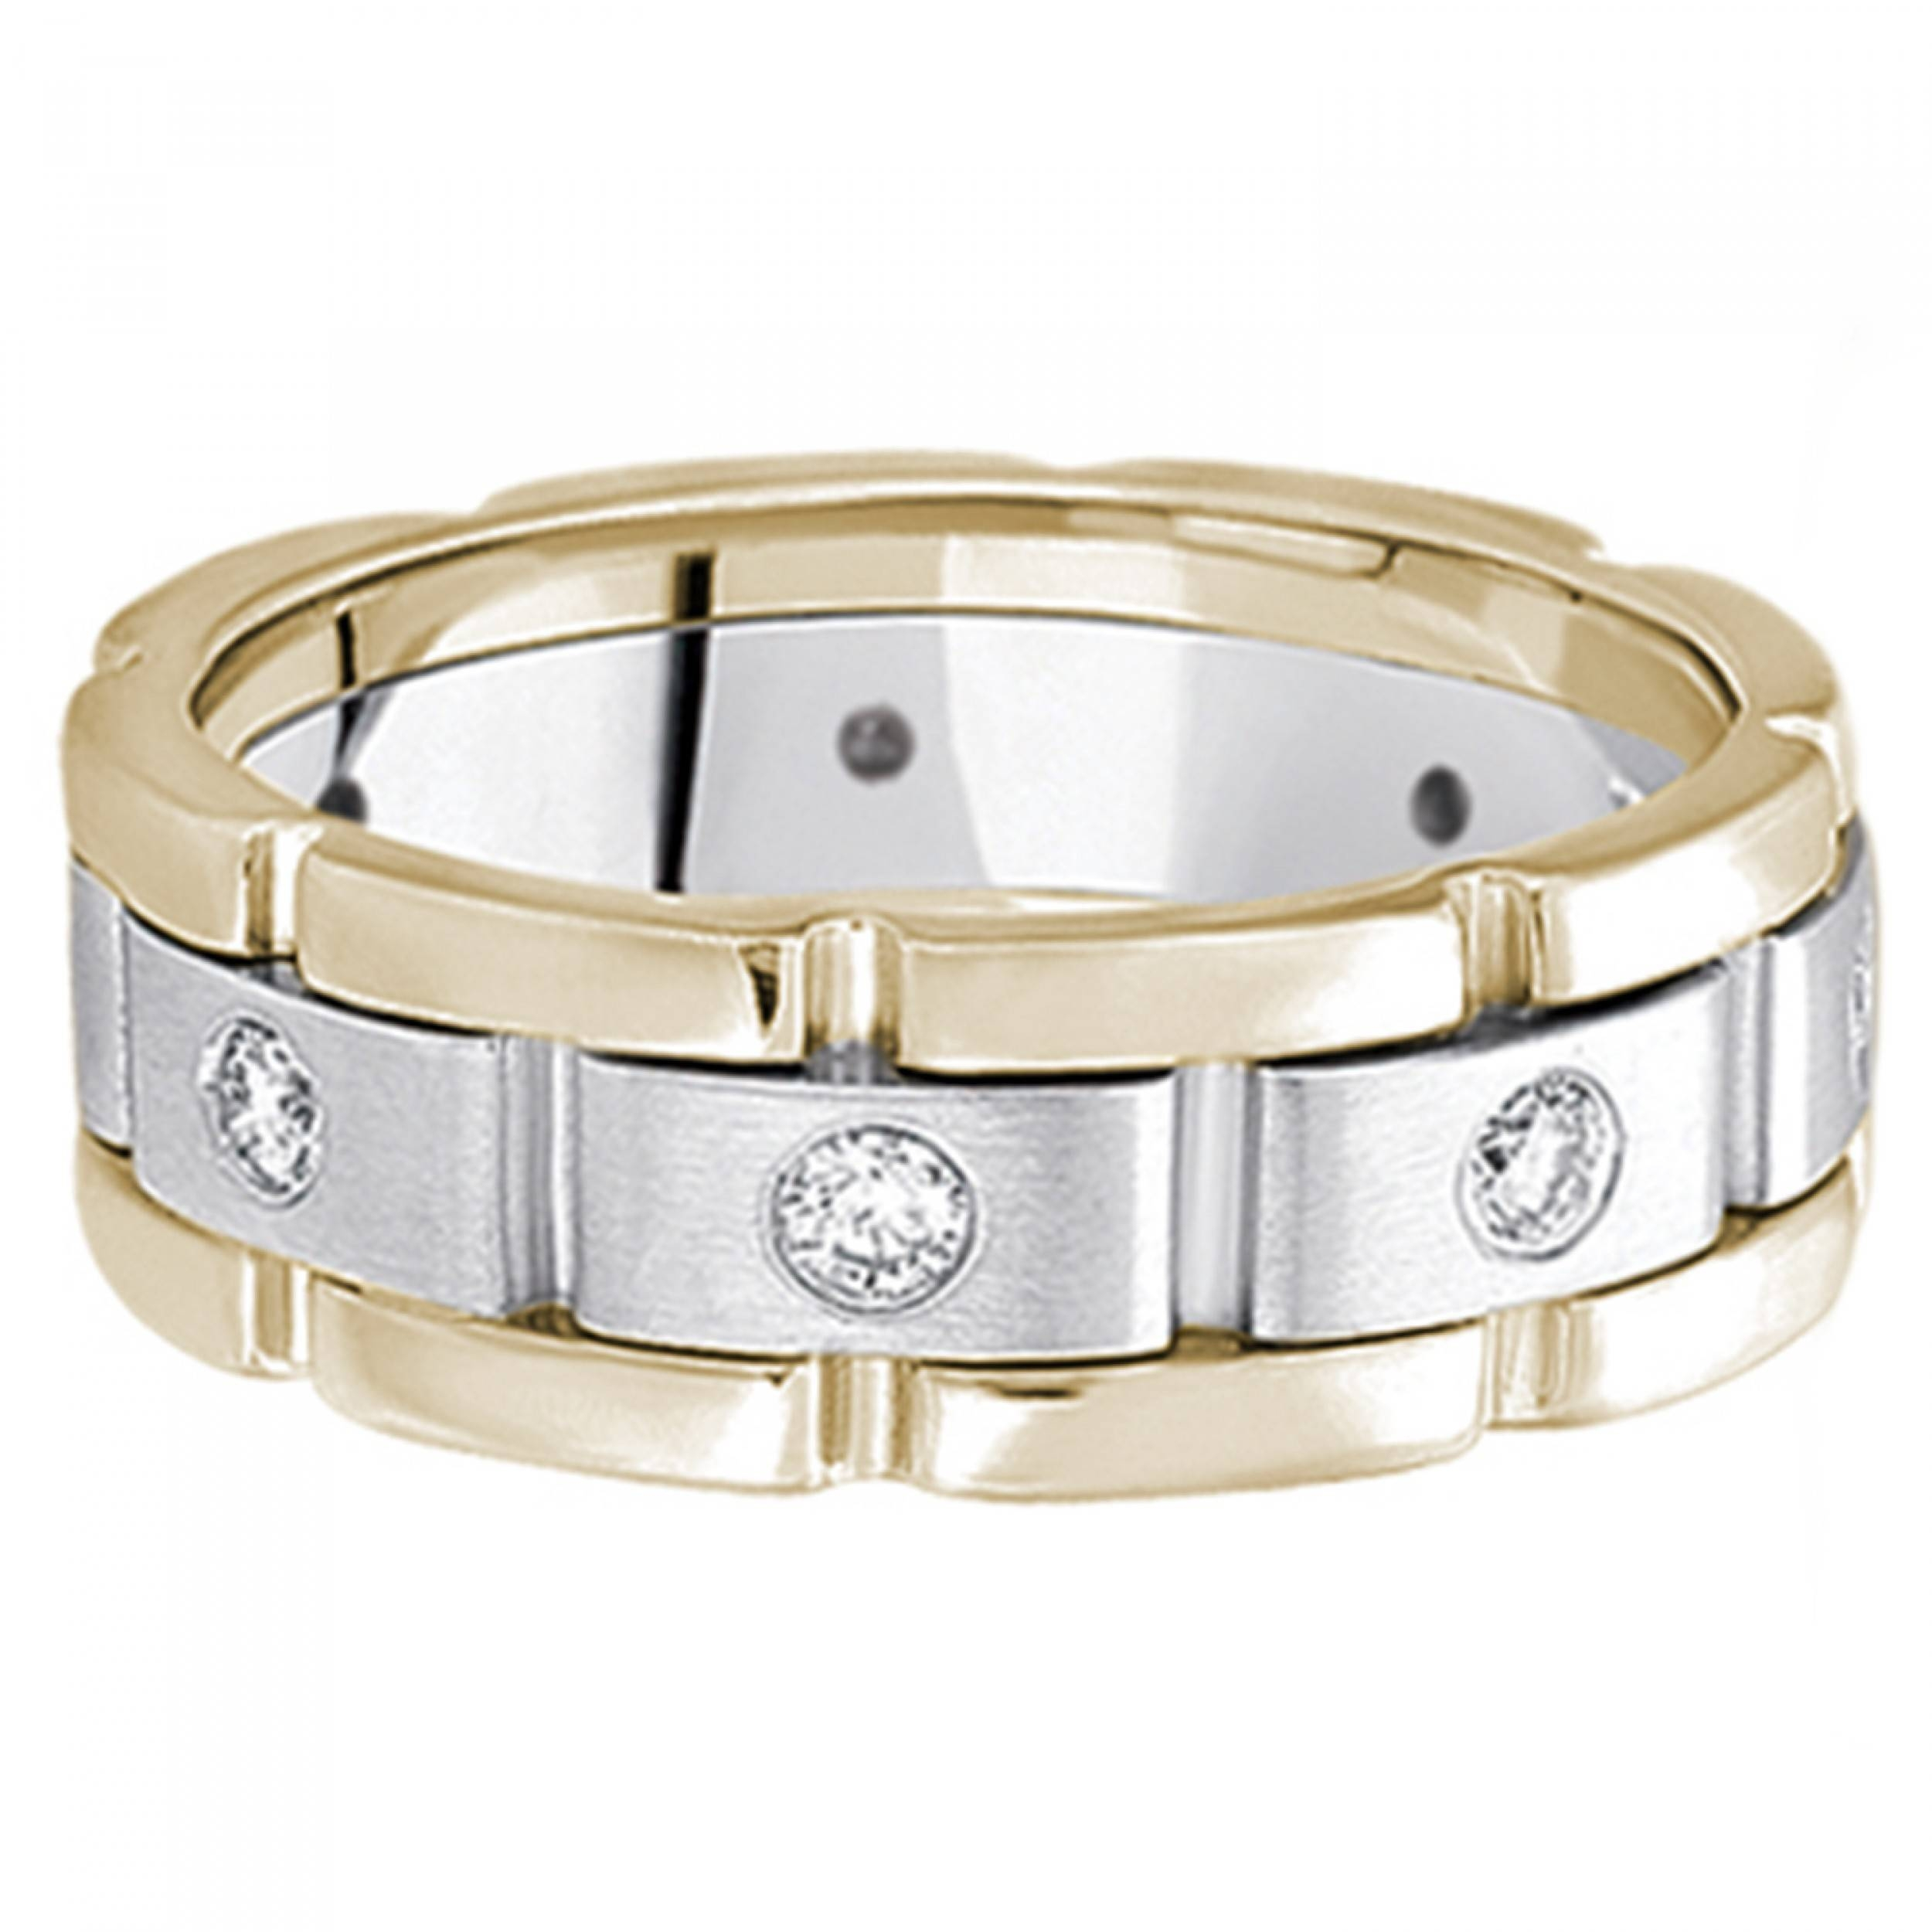 band ibg features uncompromising ravishing design and wedding seven pin two with an tone bands bold this